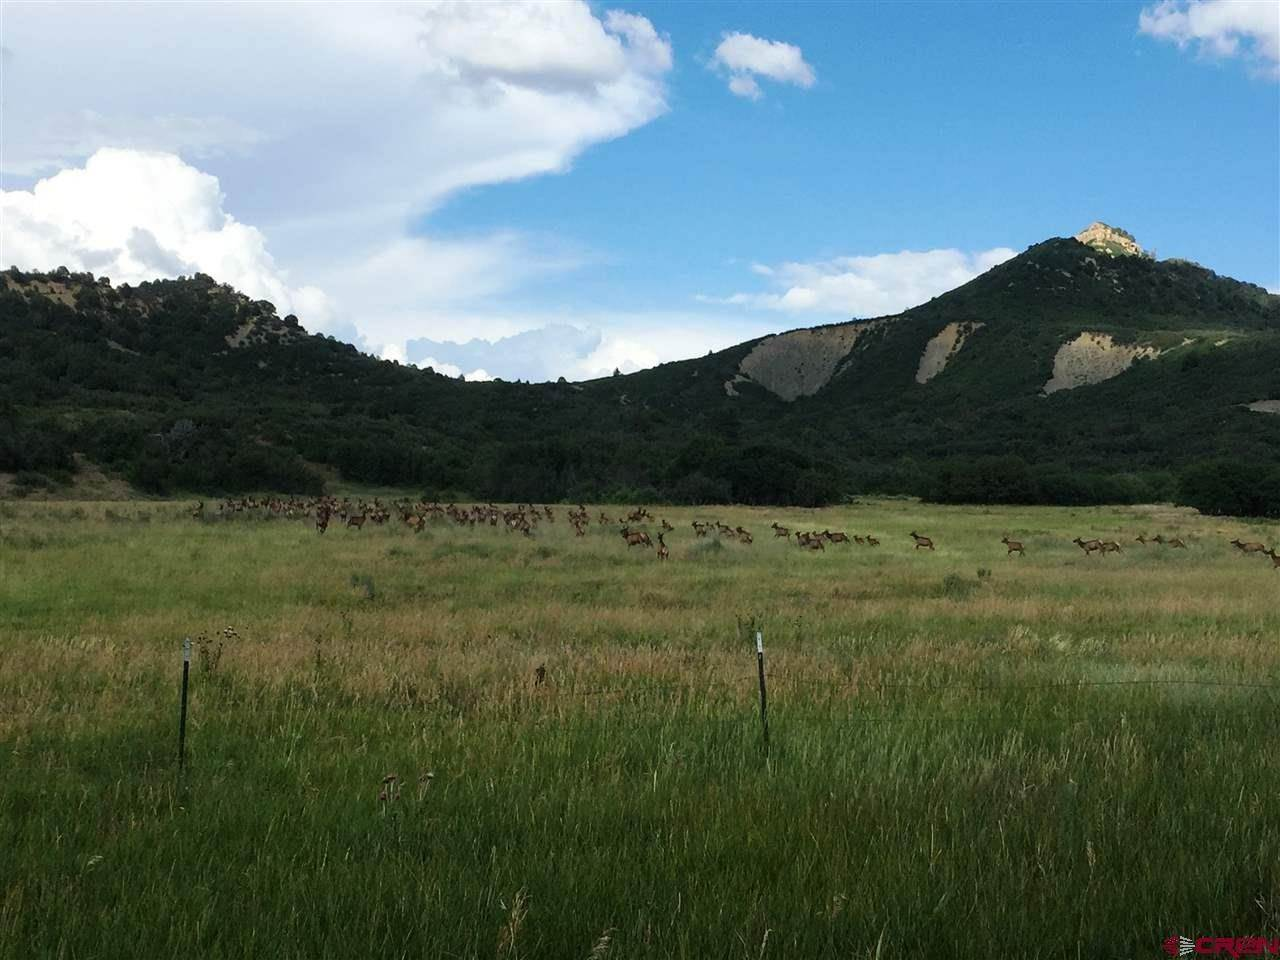 Agricultural Land for Sale at 600 County Road 139 Hesperus, Colorado 81326 United States